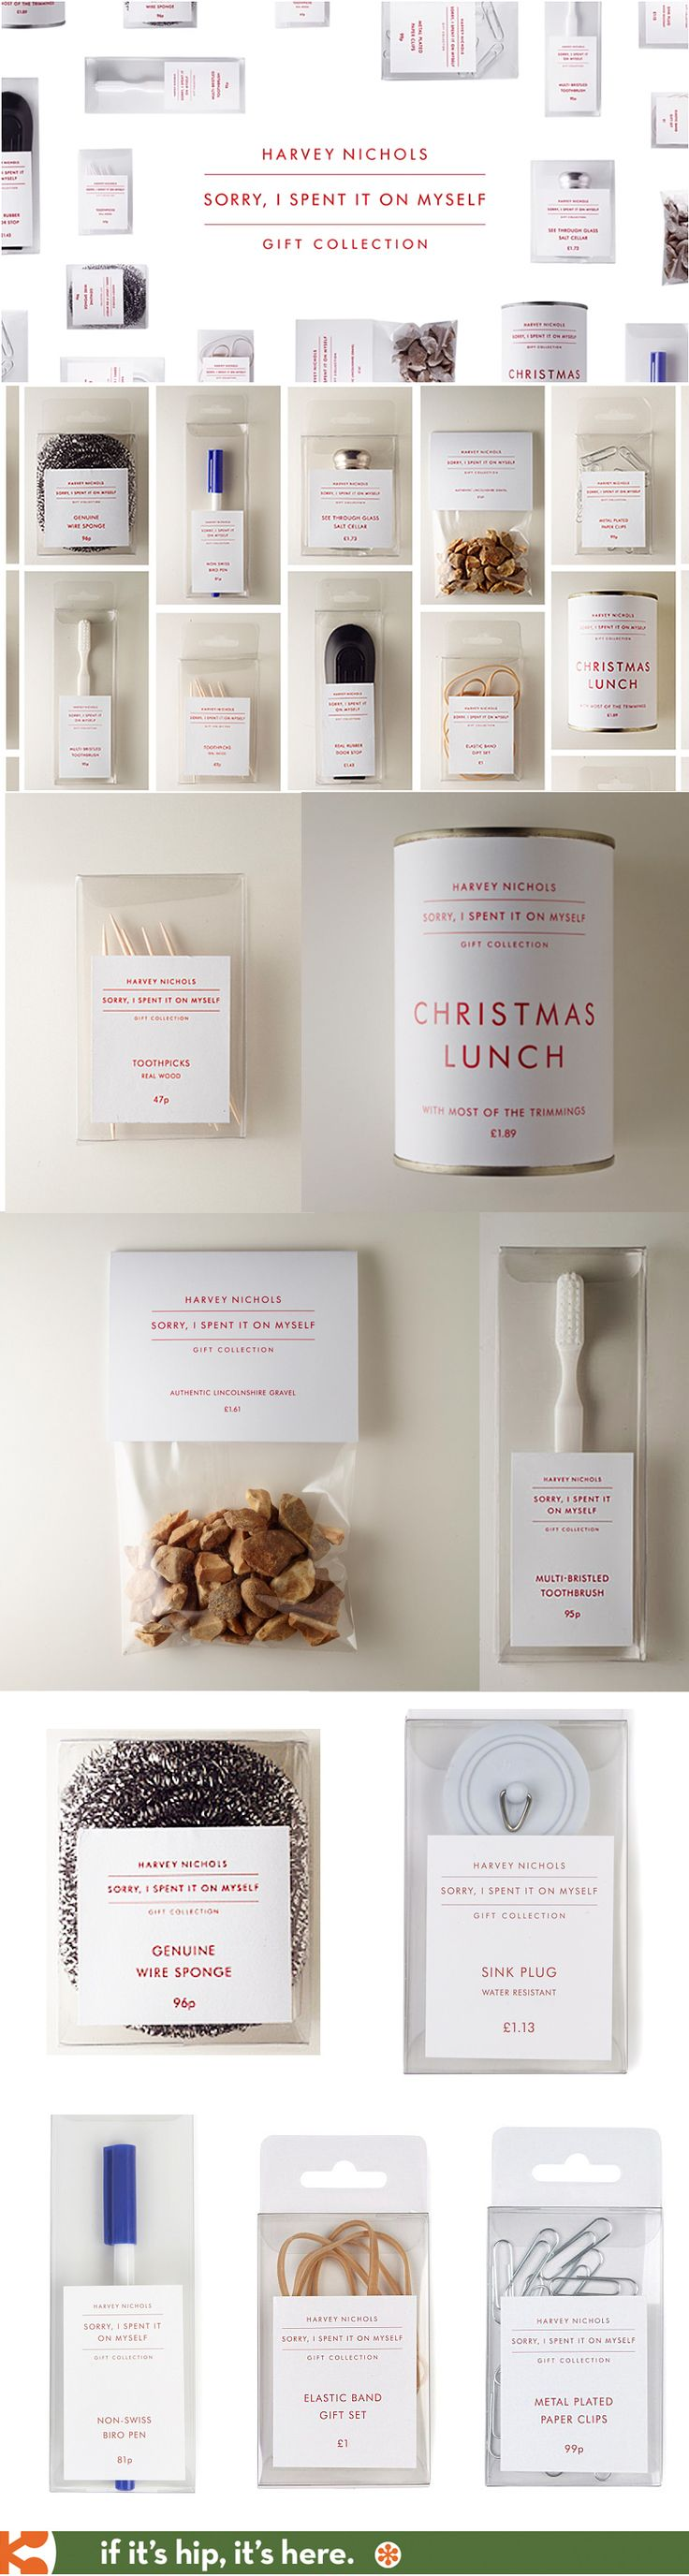 """Hilarious! Packaged goods from Harvey Nichols' """"Sorry, I spent it on myself"""" gift collection"""